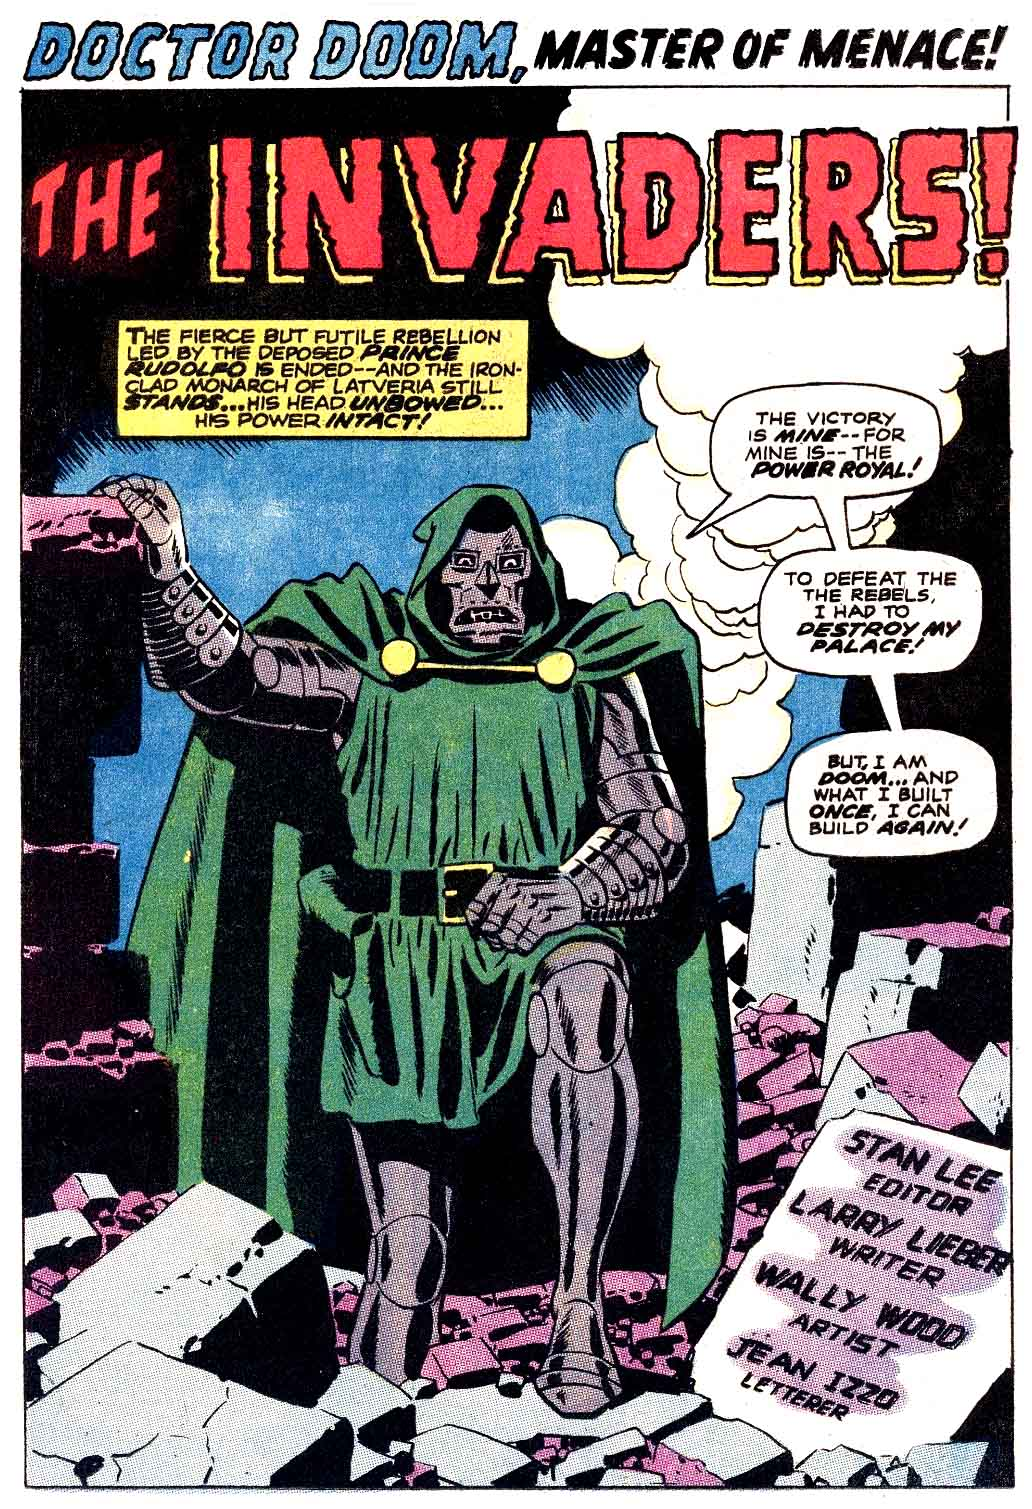 Doctor Doom Master of menace – The Invaders